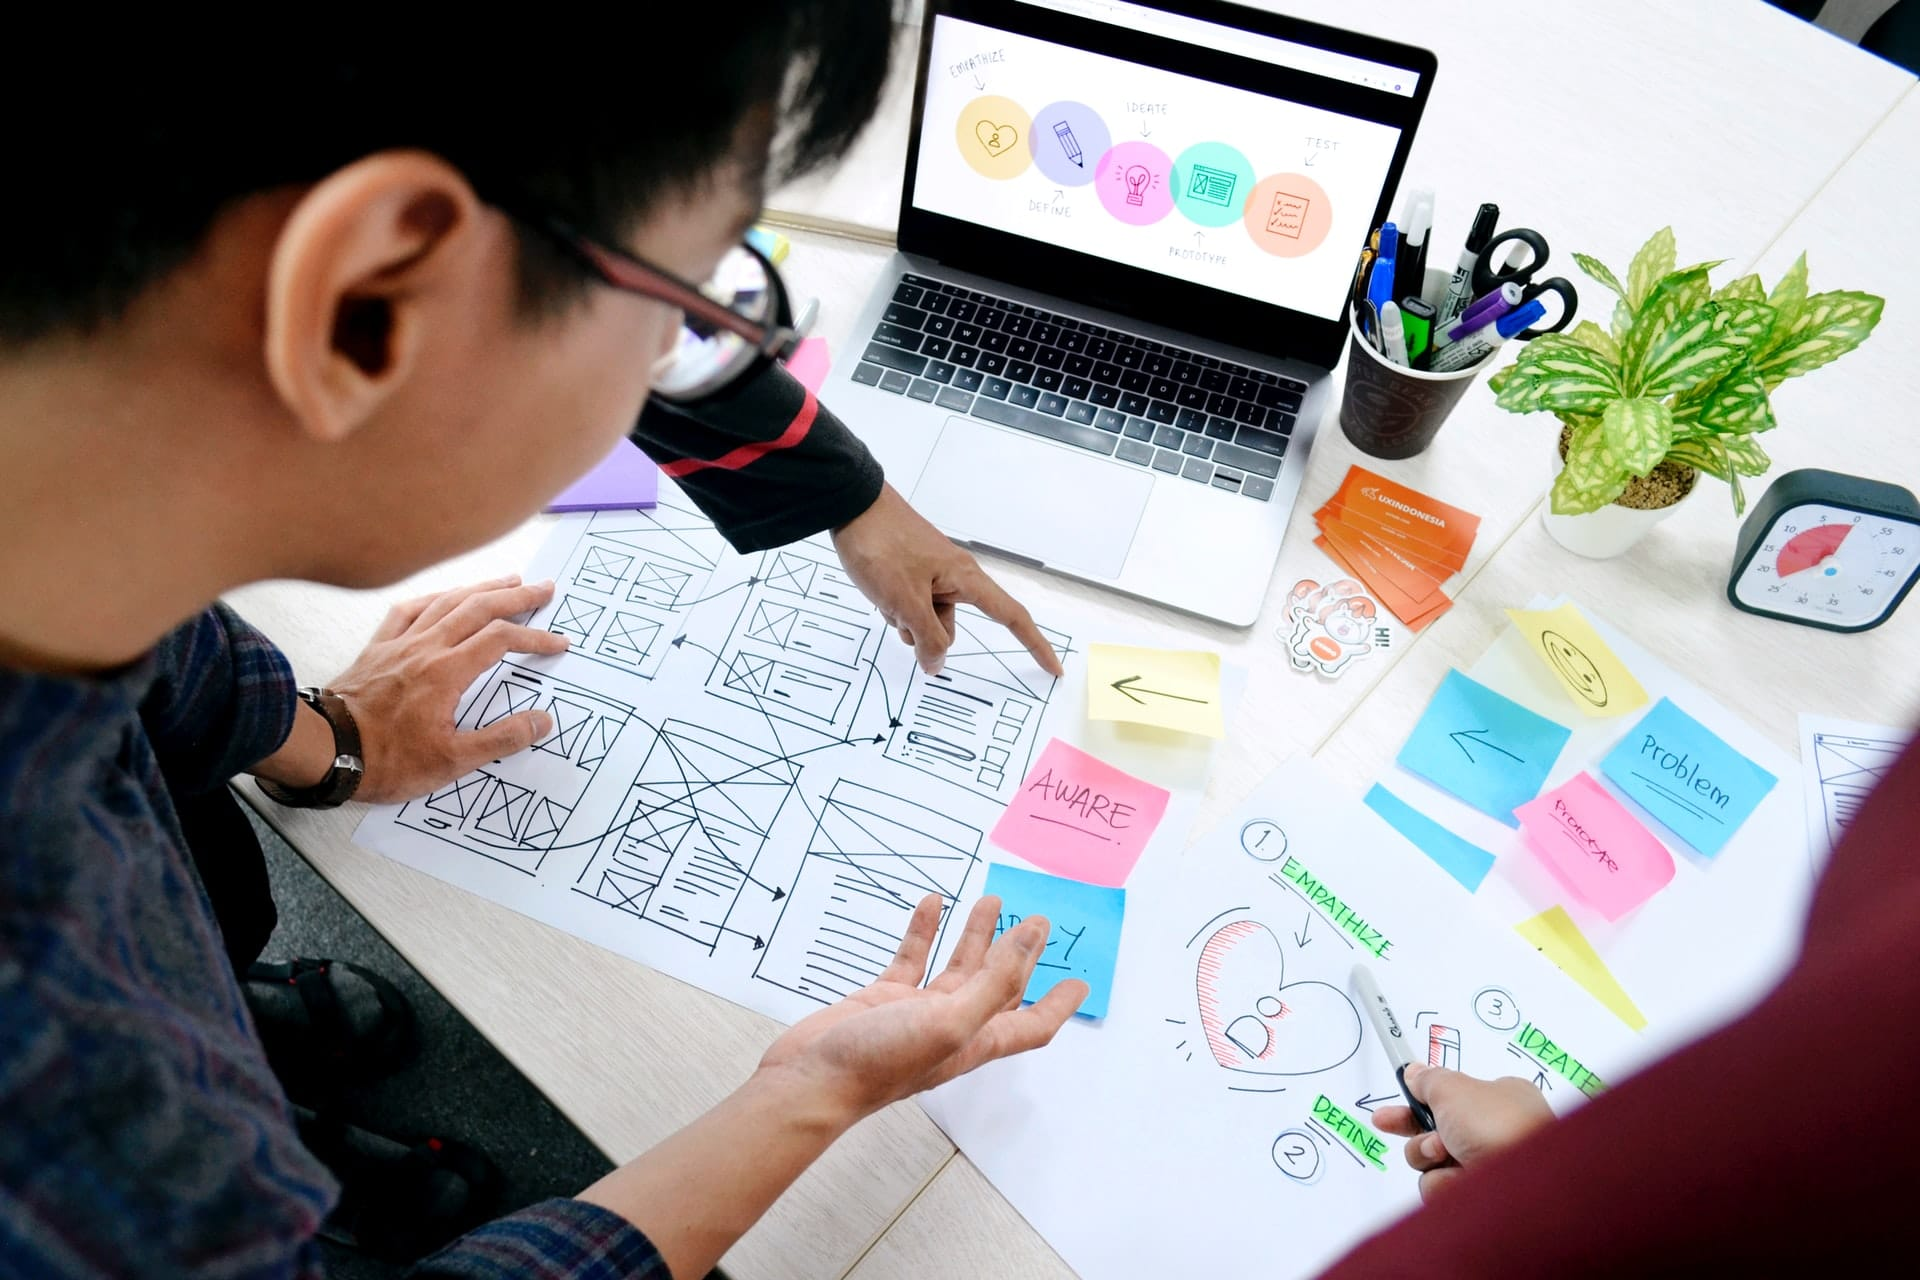 People working on UX design